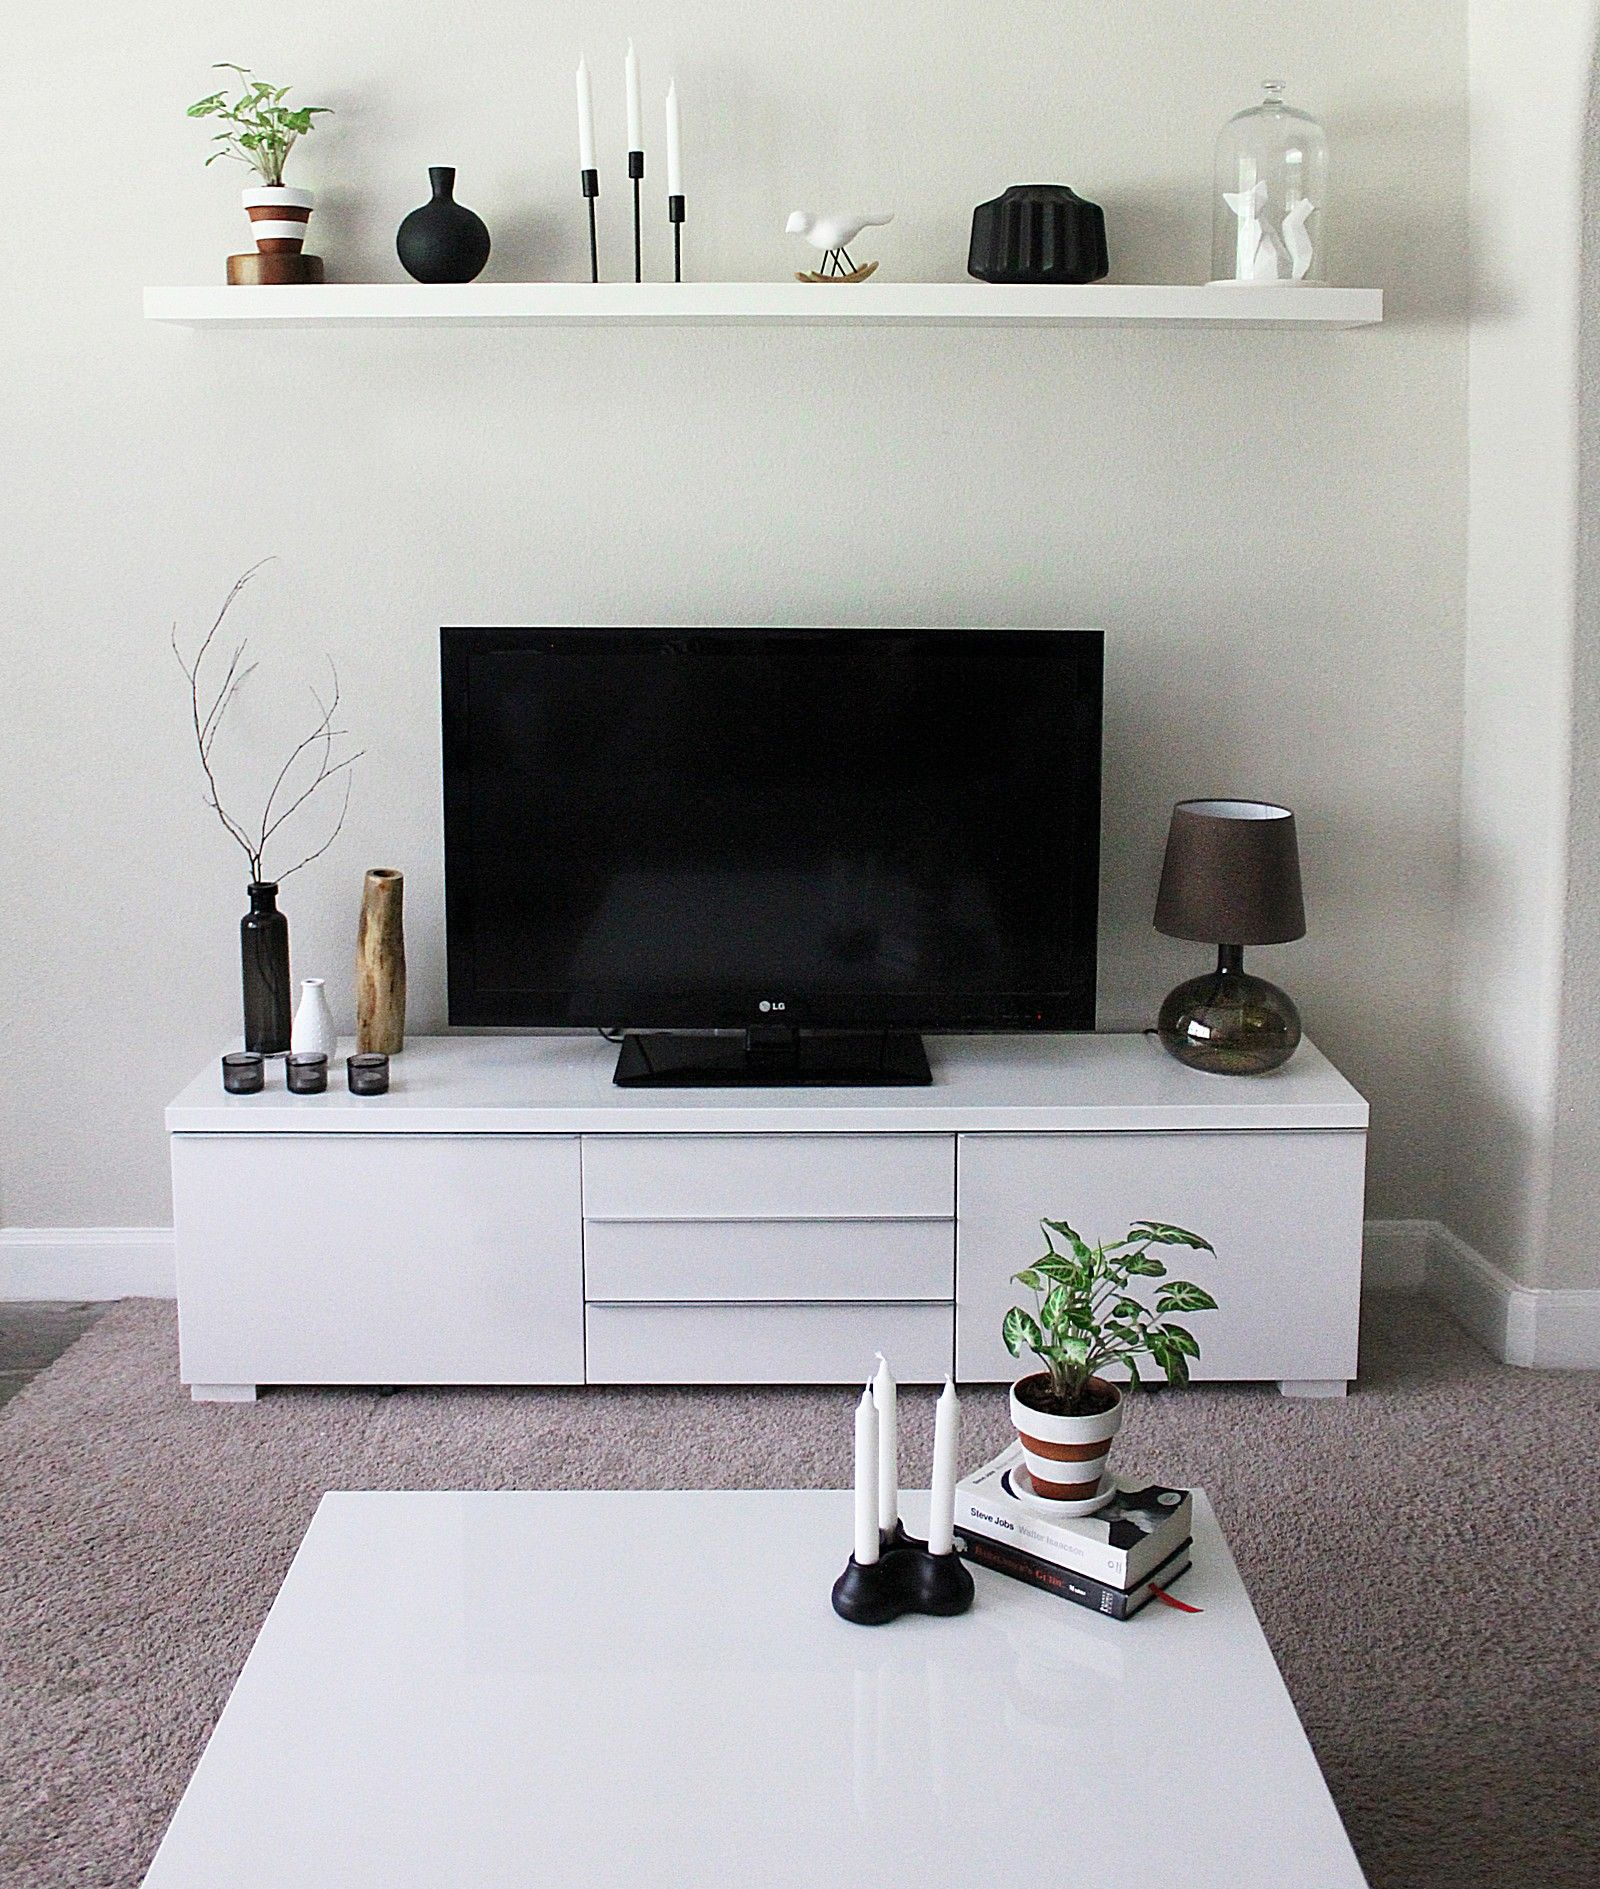 Minimalist Tv Stand And Cabinet Ikea Besta  Interiors Design Magnificent Cabinets For Living Room Designs Design Inspiration